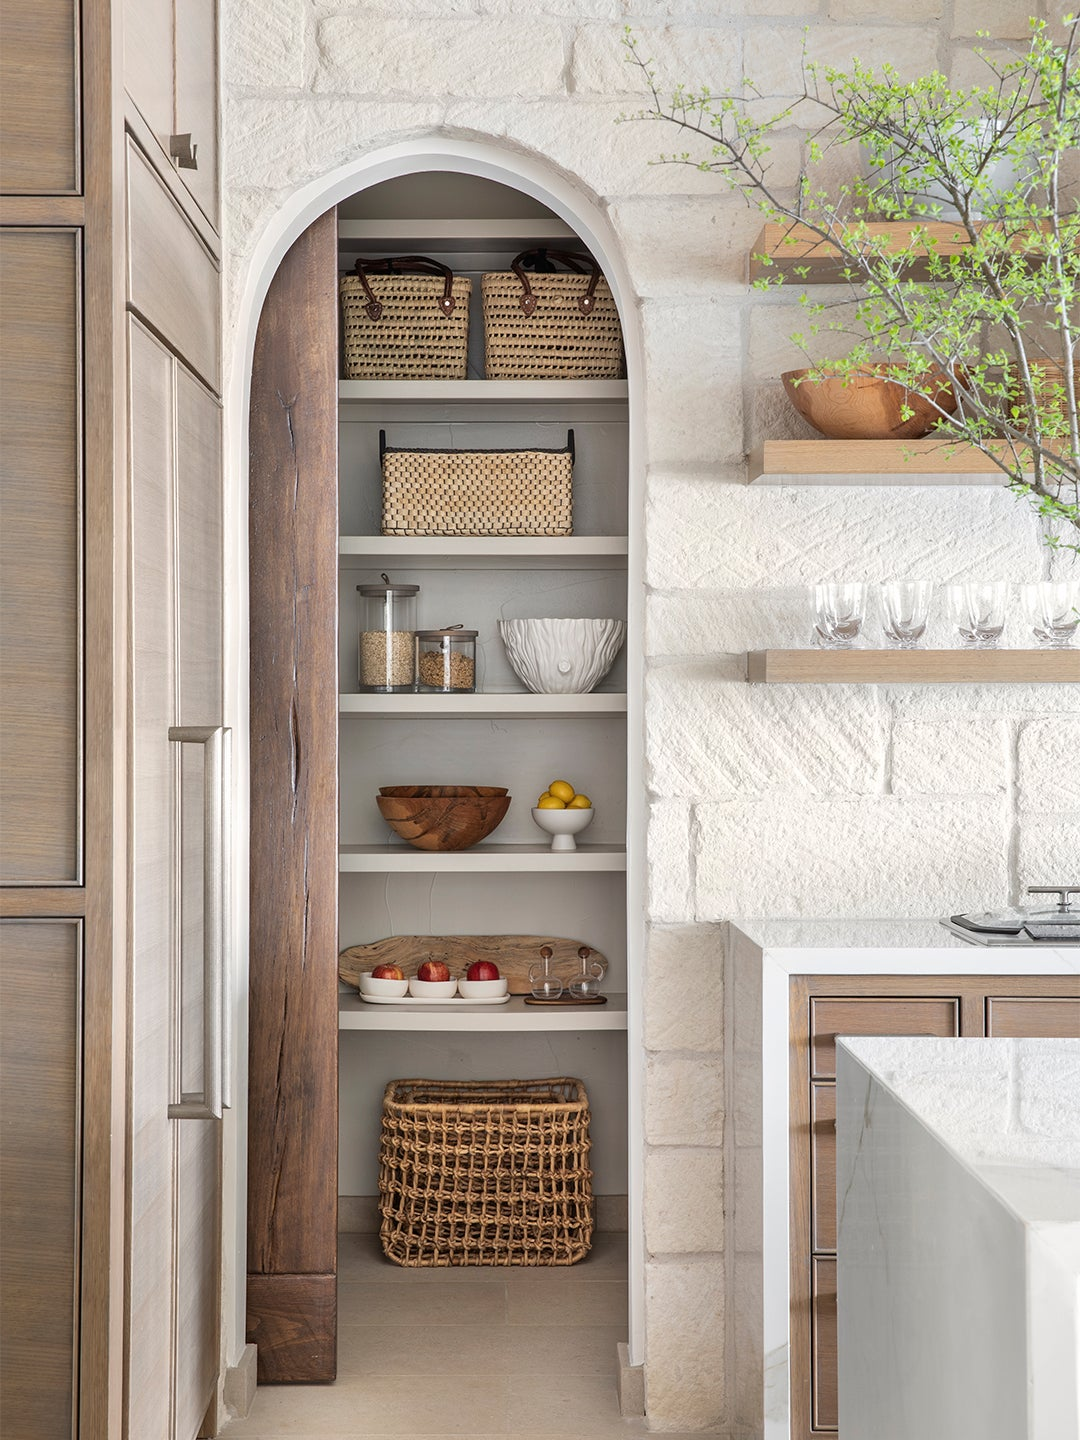 How to Organize a Pantry With Deep Shelves So You Can Actually See Everything